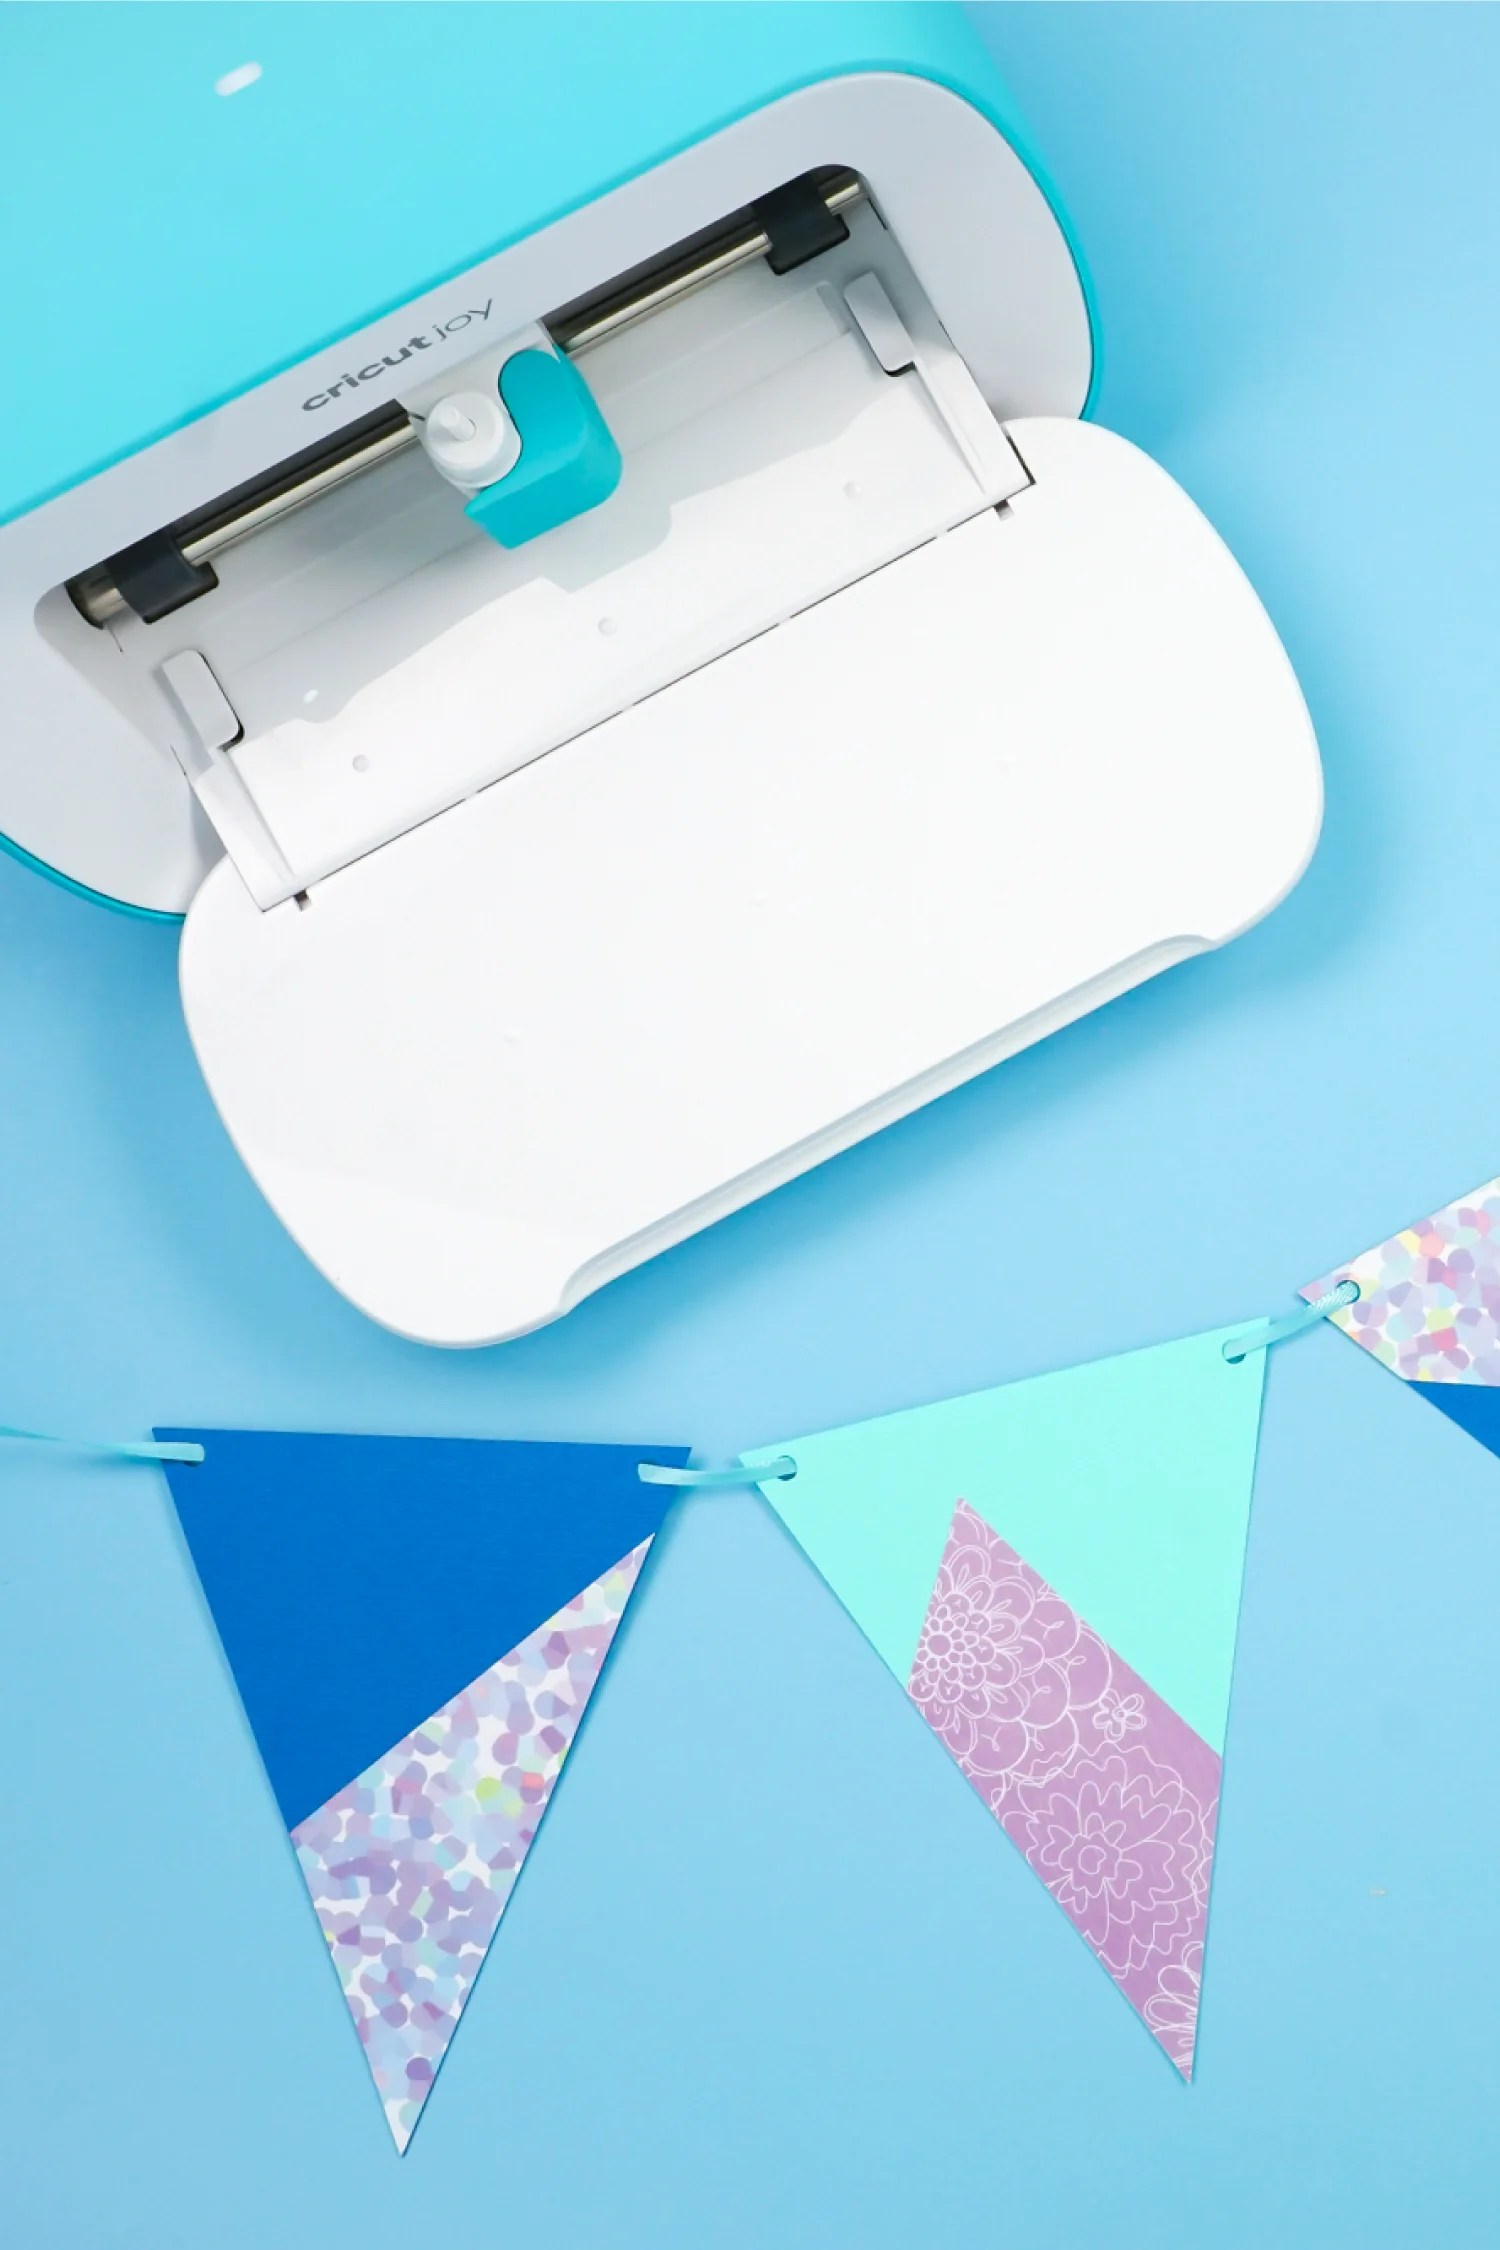 No glue is necessary with Cricut's Adhesive Backed Paper! Here's how to cut Adhesive Backed Paper using your Cricut Joy—and it works with Cricut Explore and Cricut Maker, too!